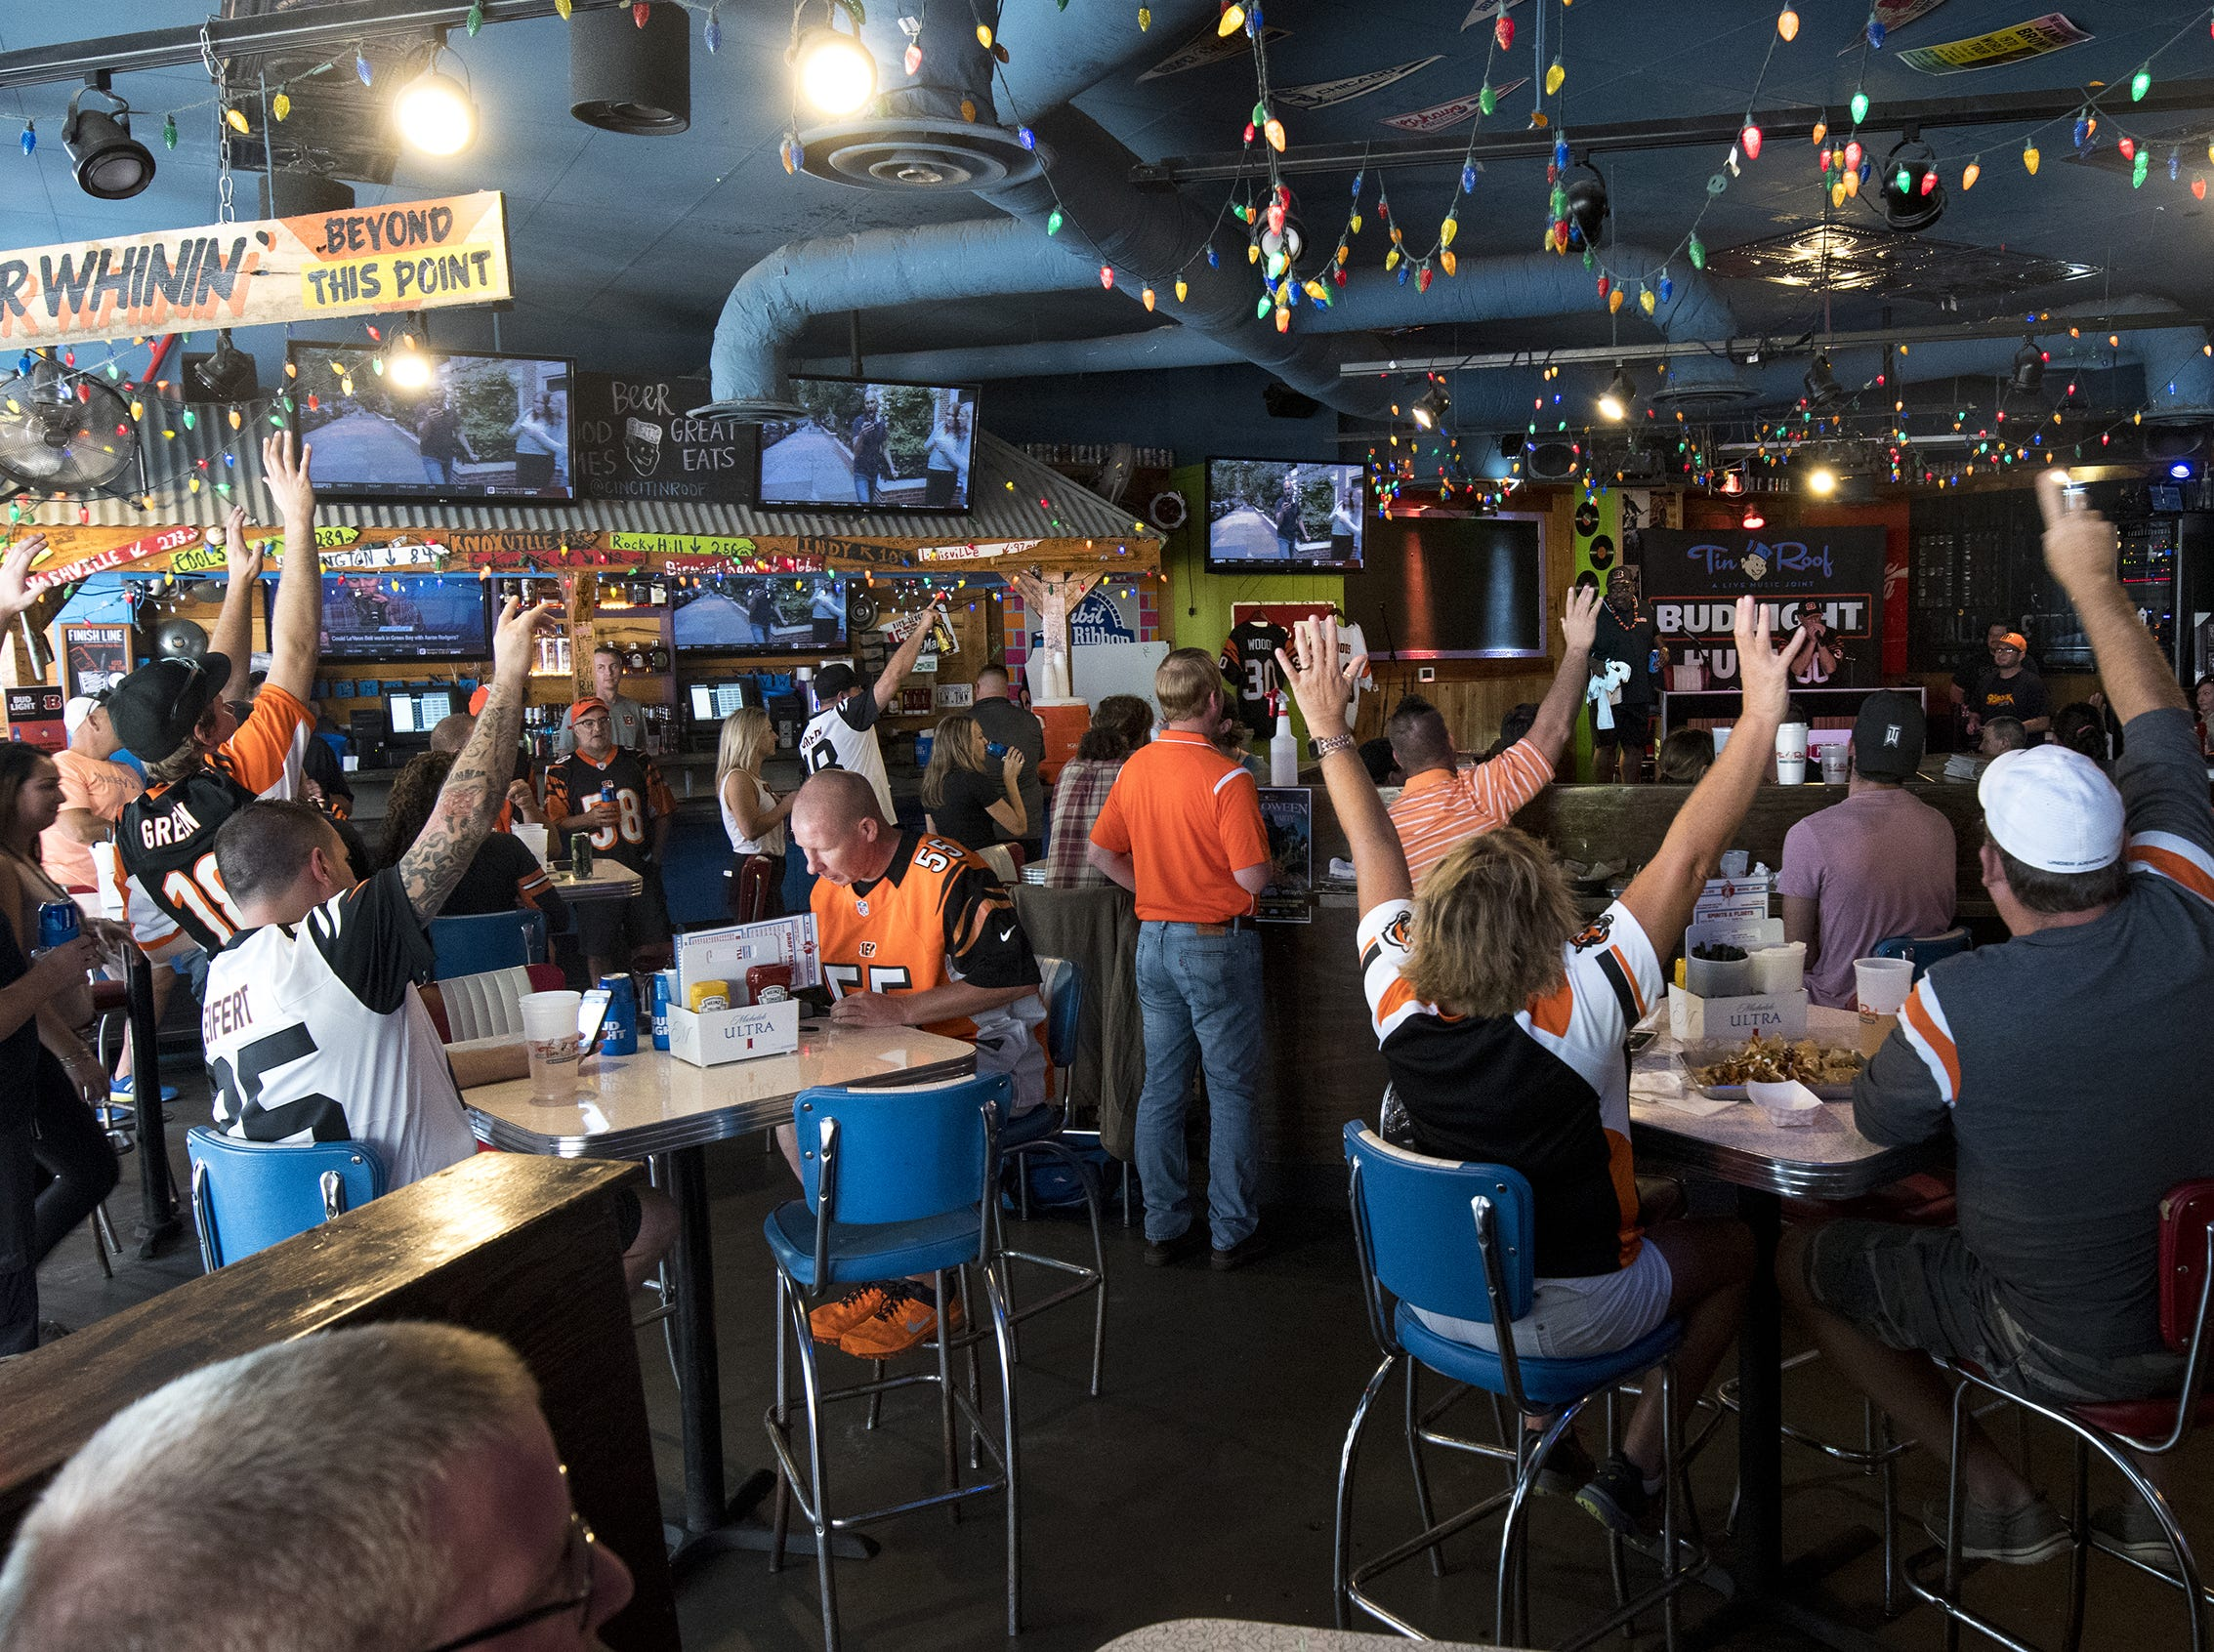 Bengals fans hang out at the Tin Roof before the Bengals game against the Baltimore Ravens Thursday, September 13, 2018 in Cincinnati, Ohio.